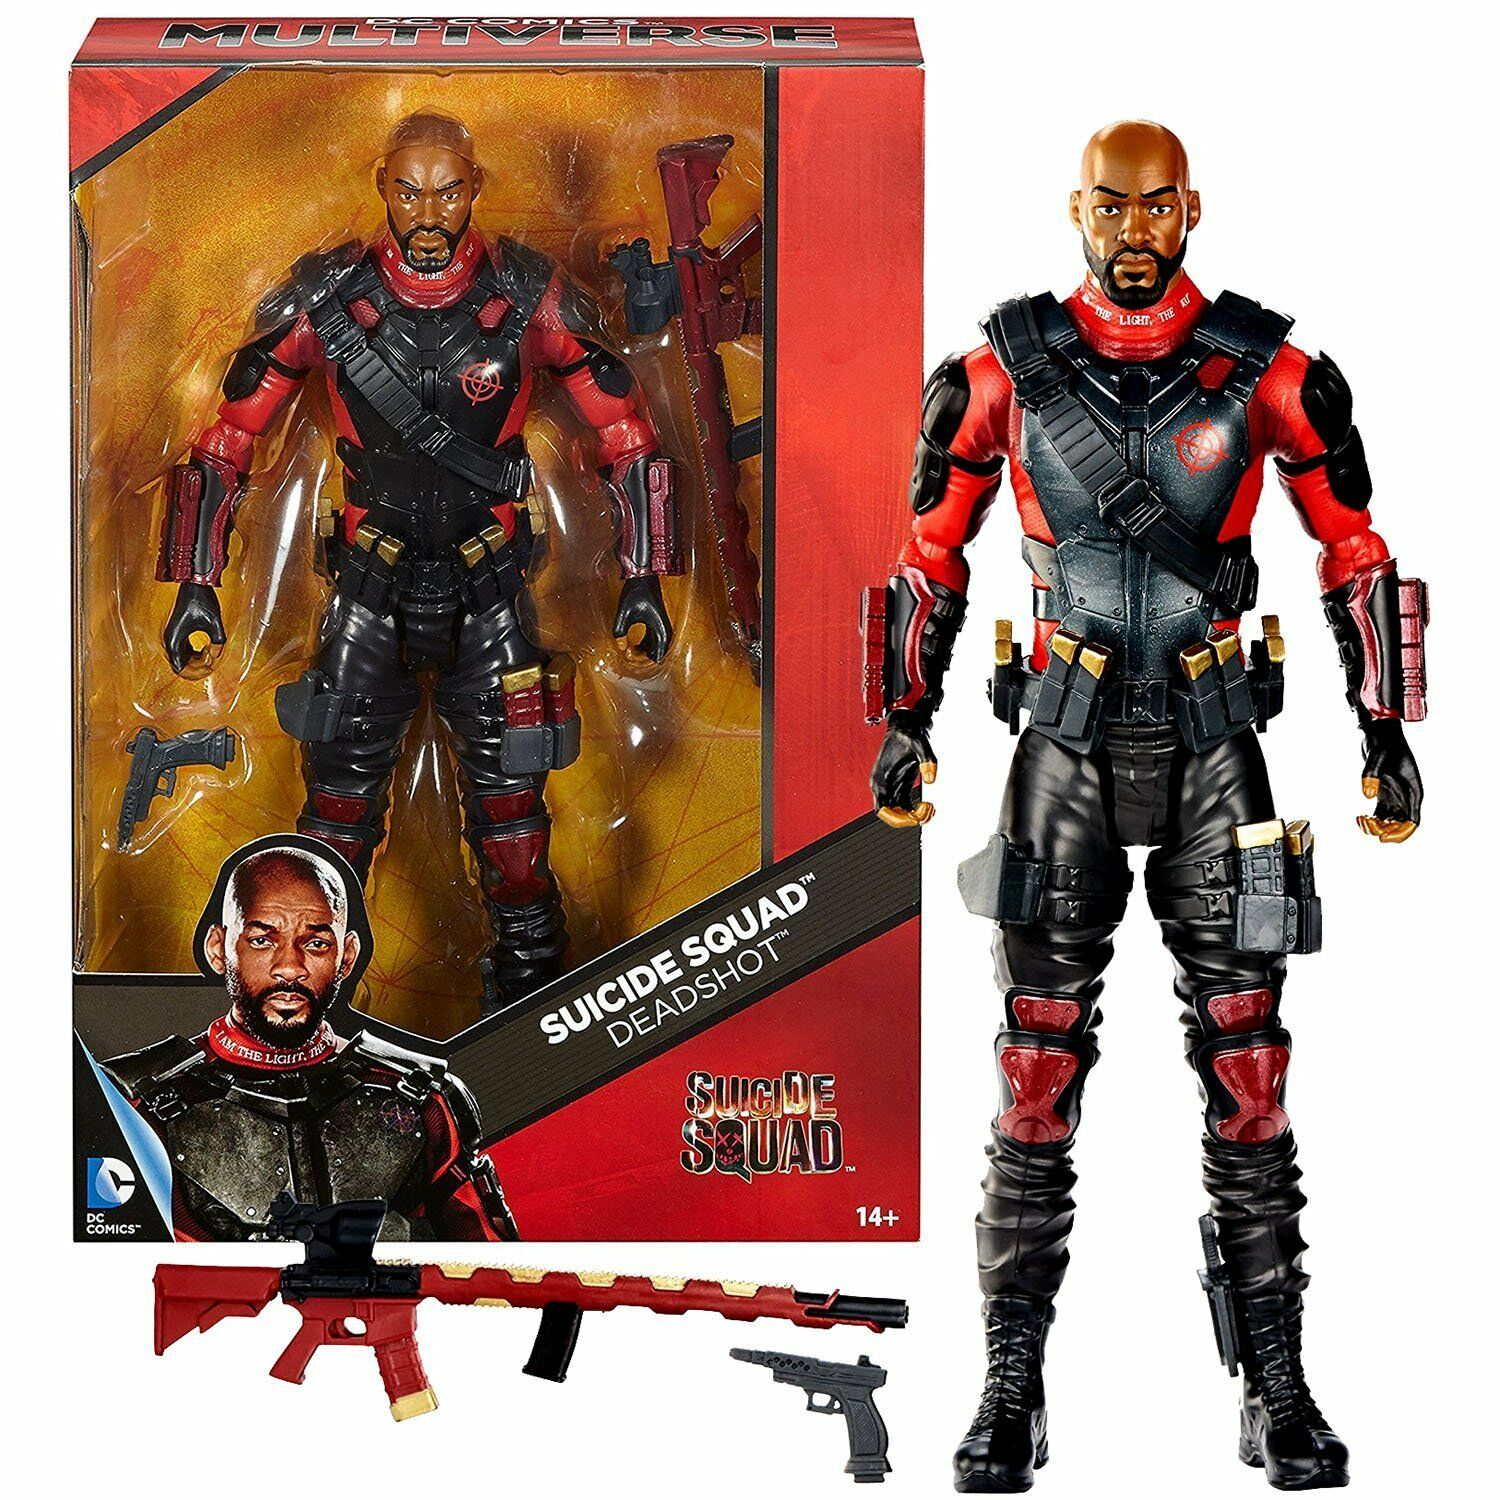 Dc multiversum  selbstmordkommando deadshot will smith.